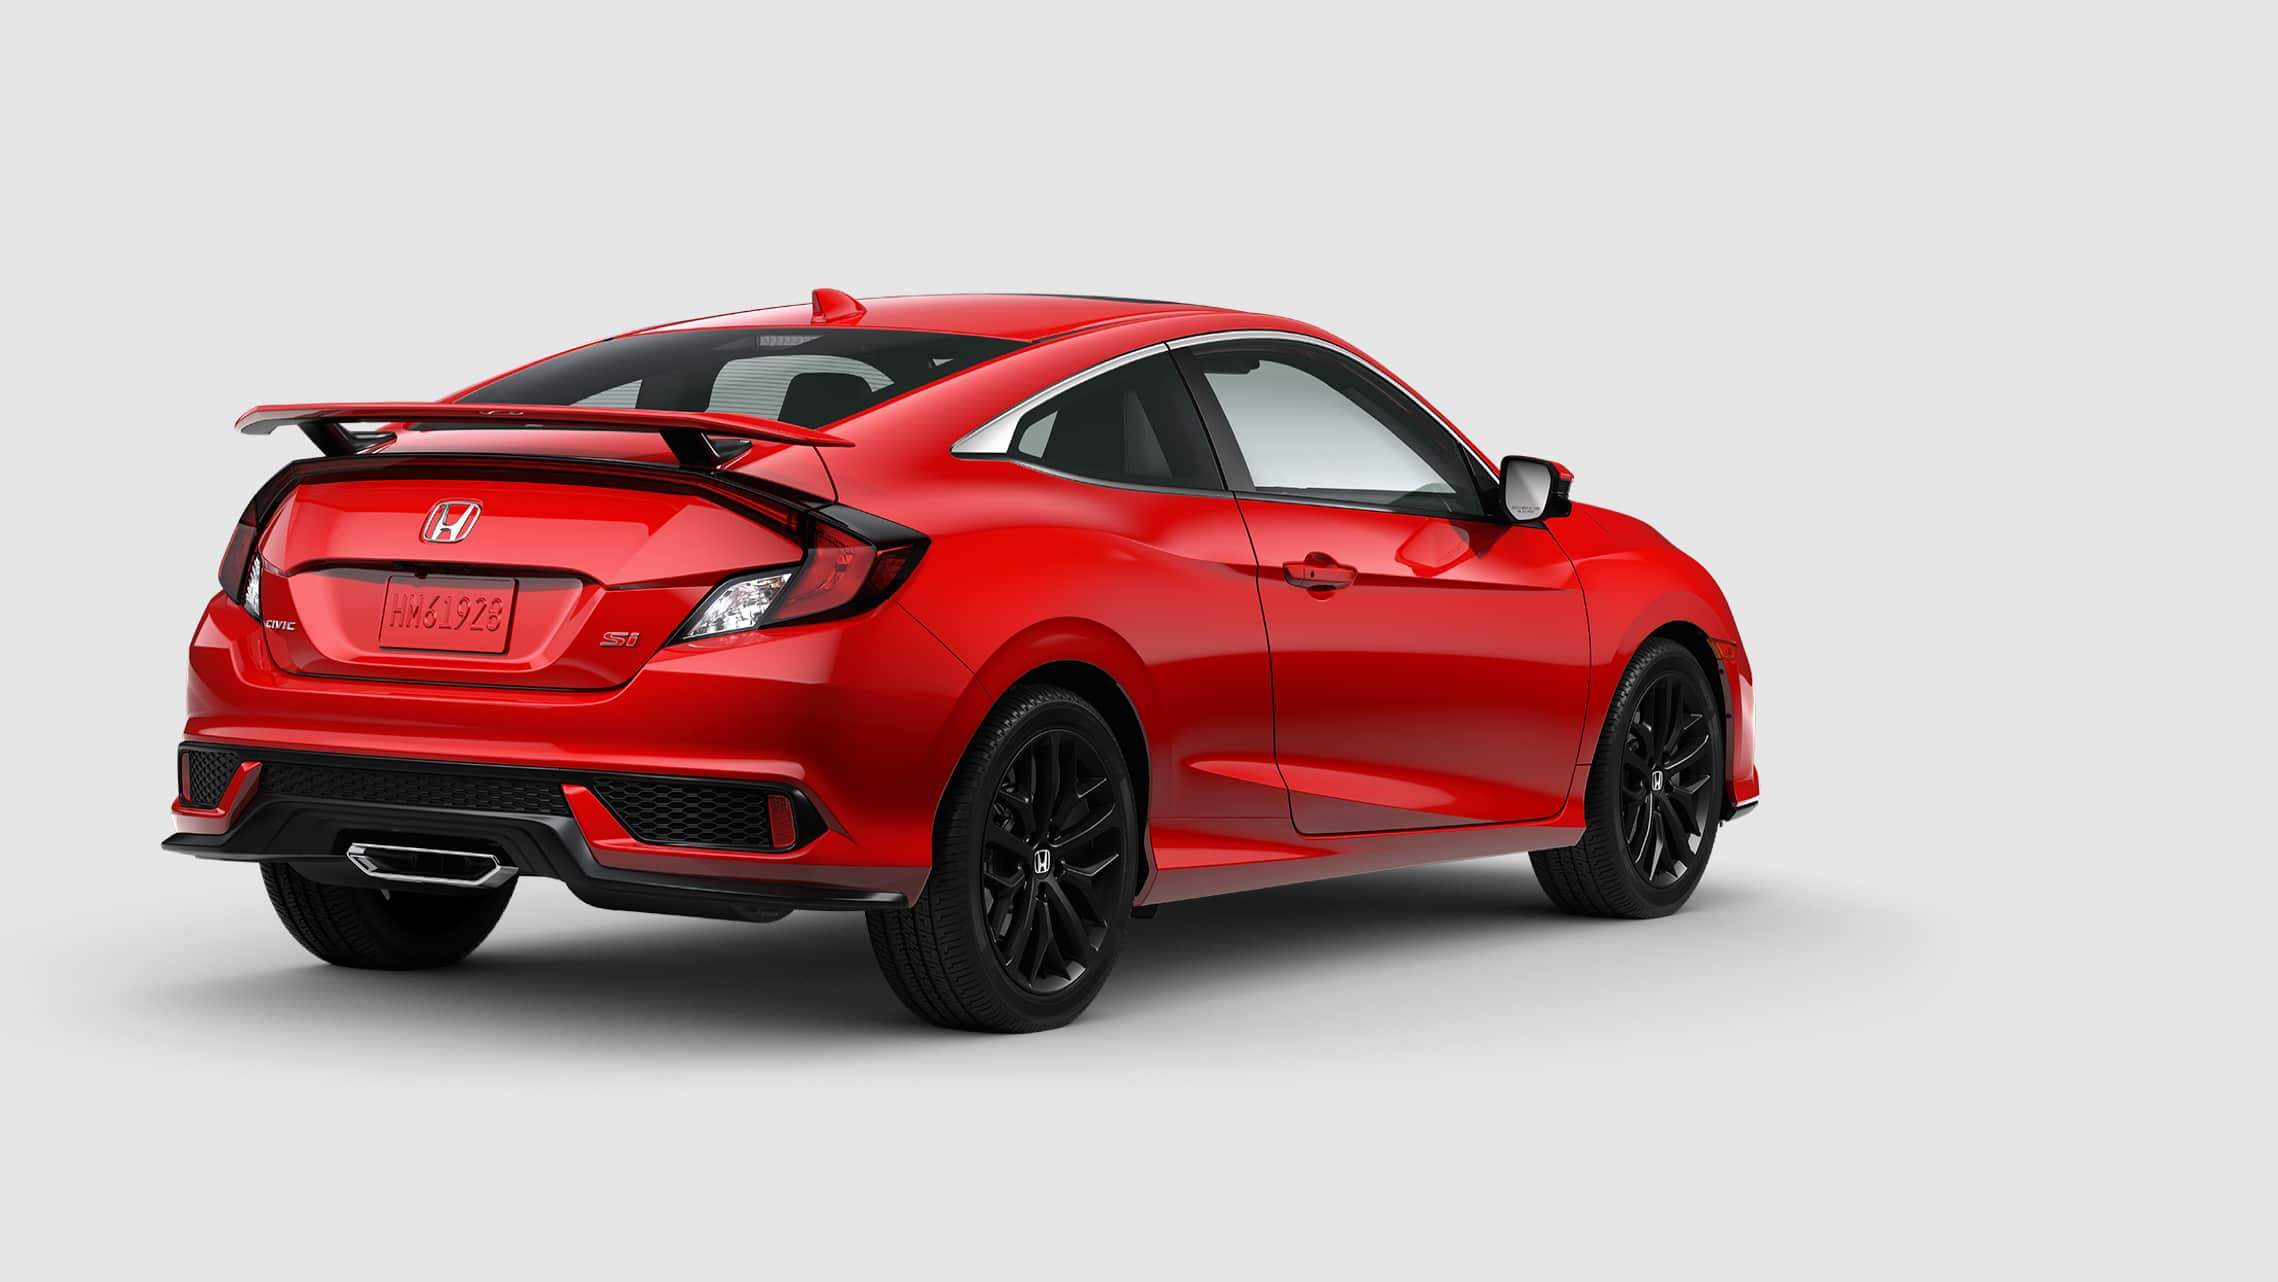 Rear view of 2020 Honda Civic Si Coupe in Rallye Red.